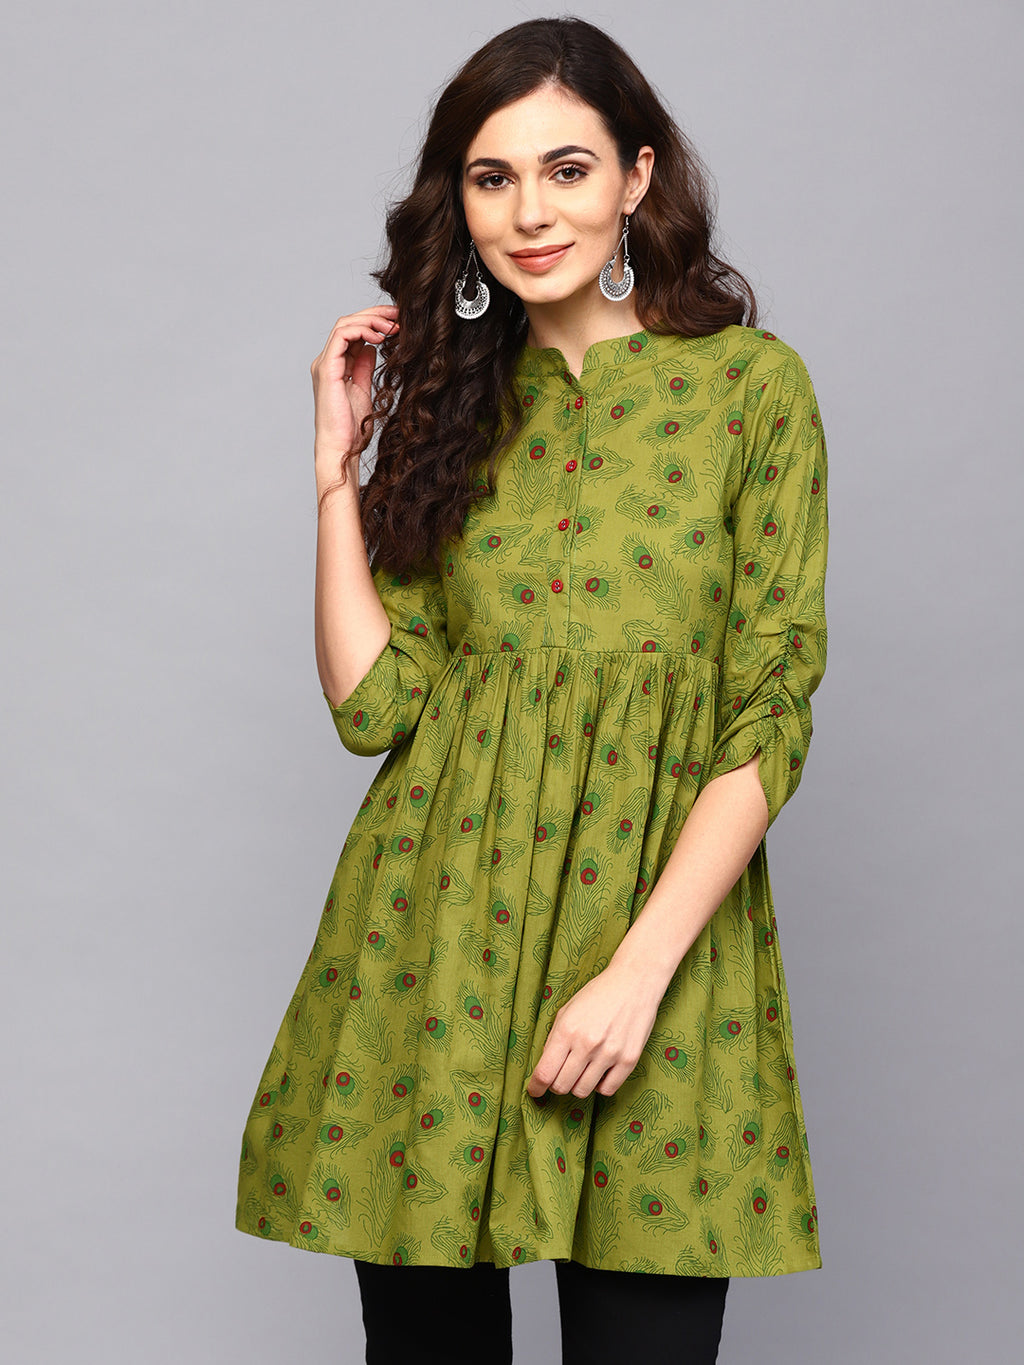 Green Feather Print Pleated Tunic (Fully Stitched) | Znx4ever.com